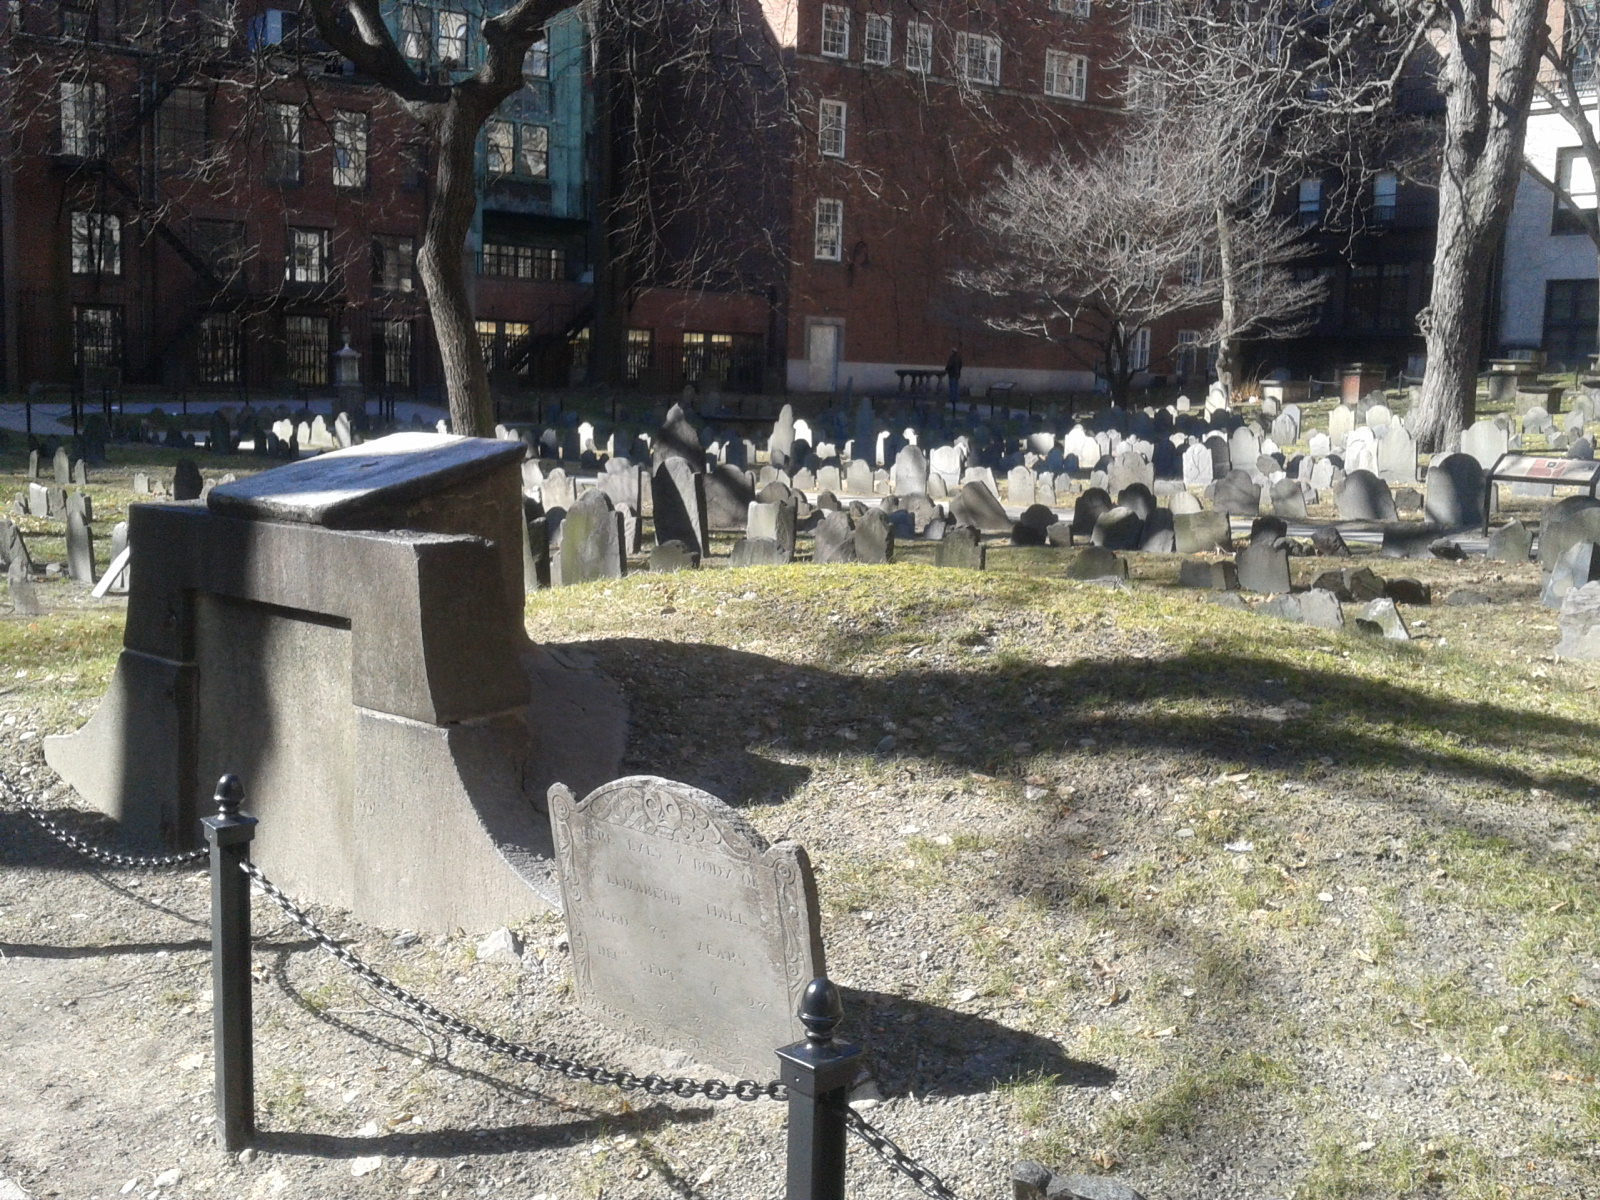 The cemetery where Paul Revere, the Franklins and others rest